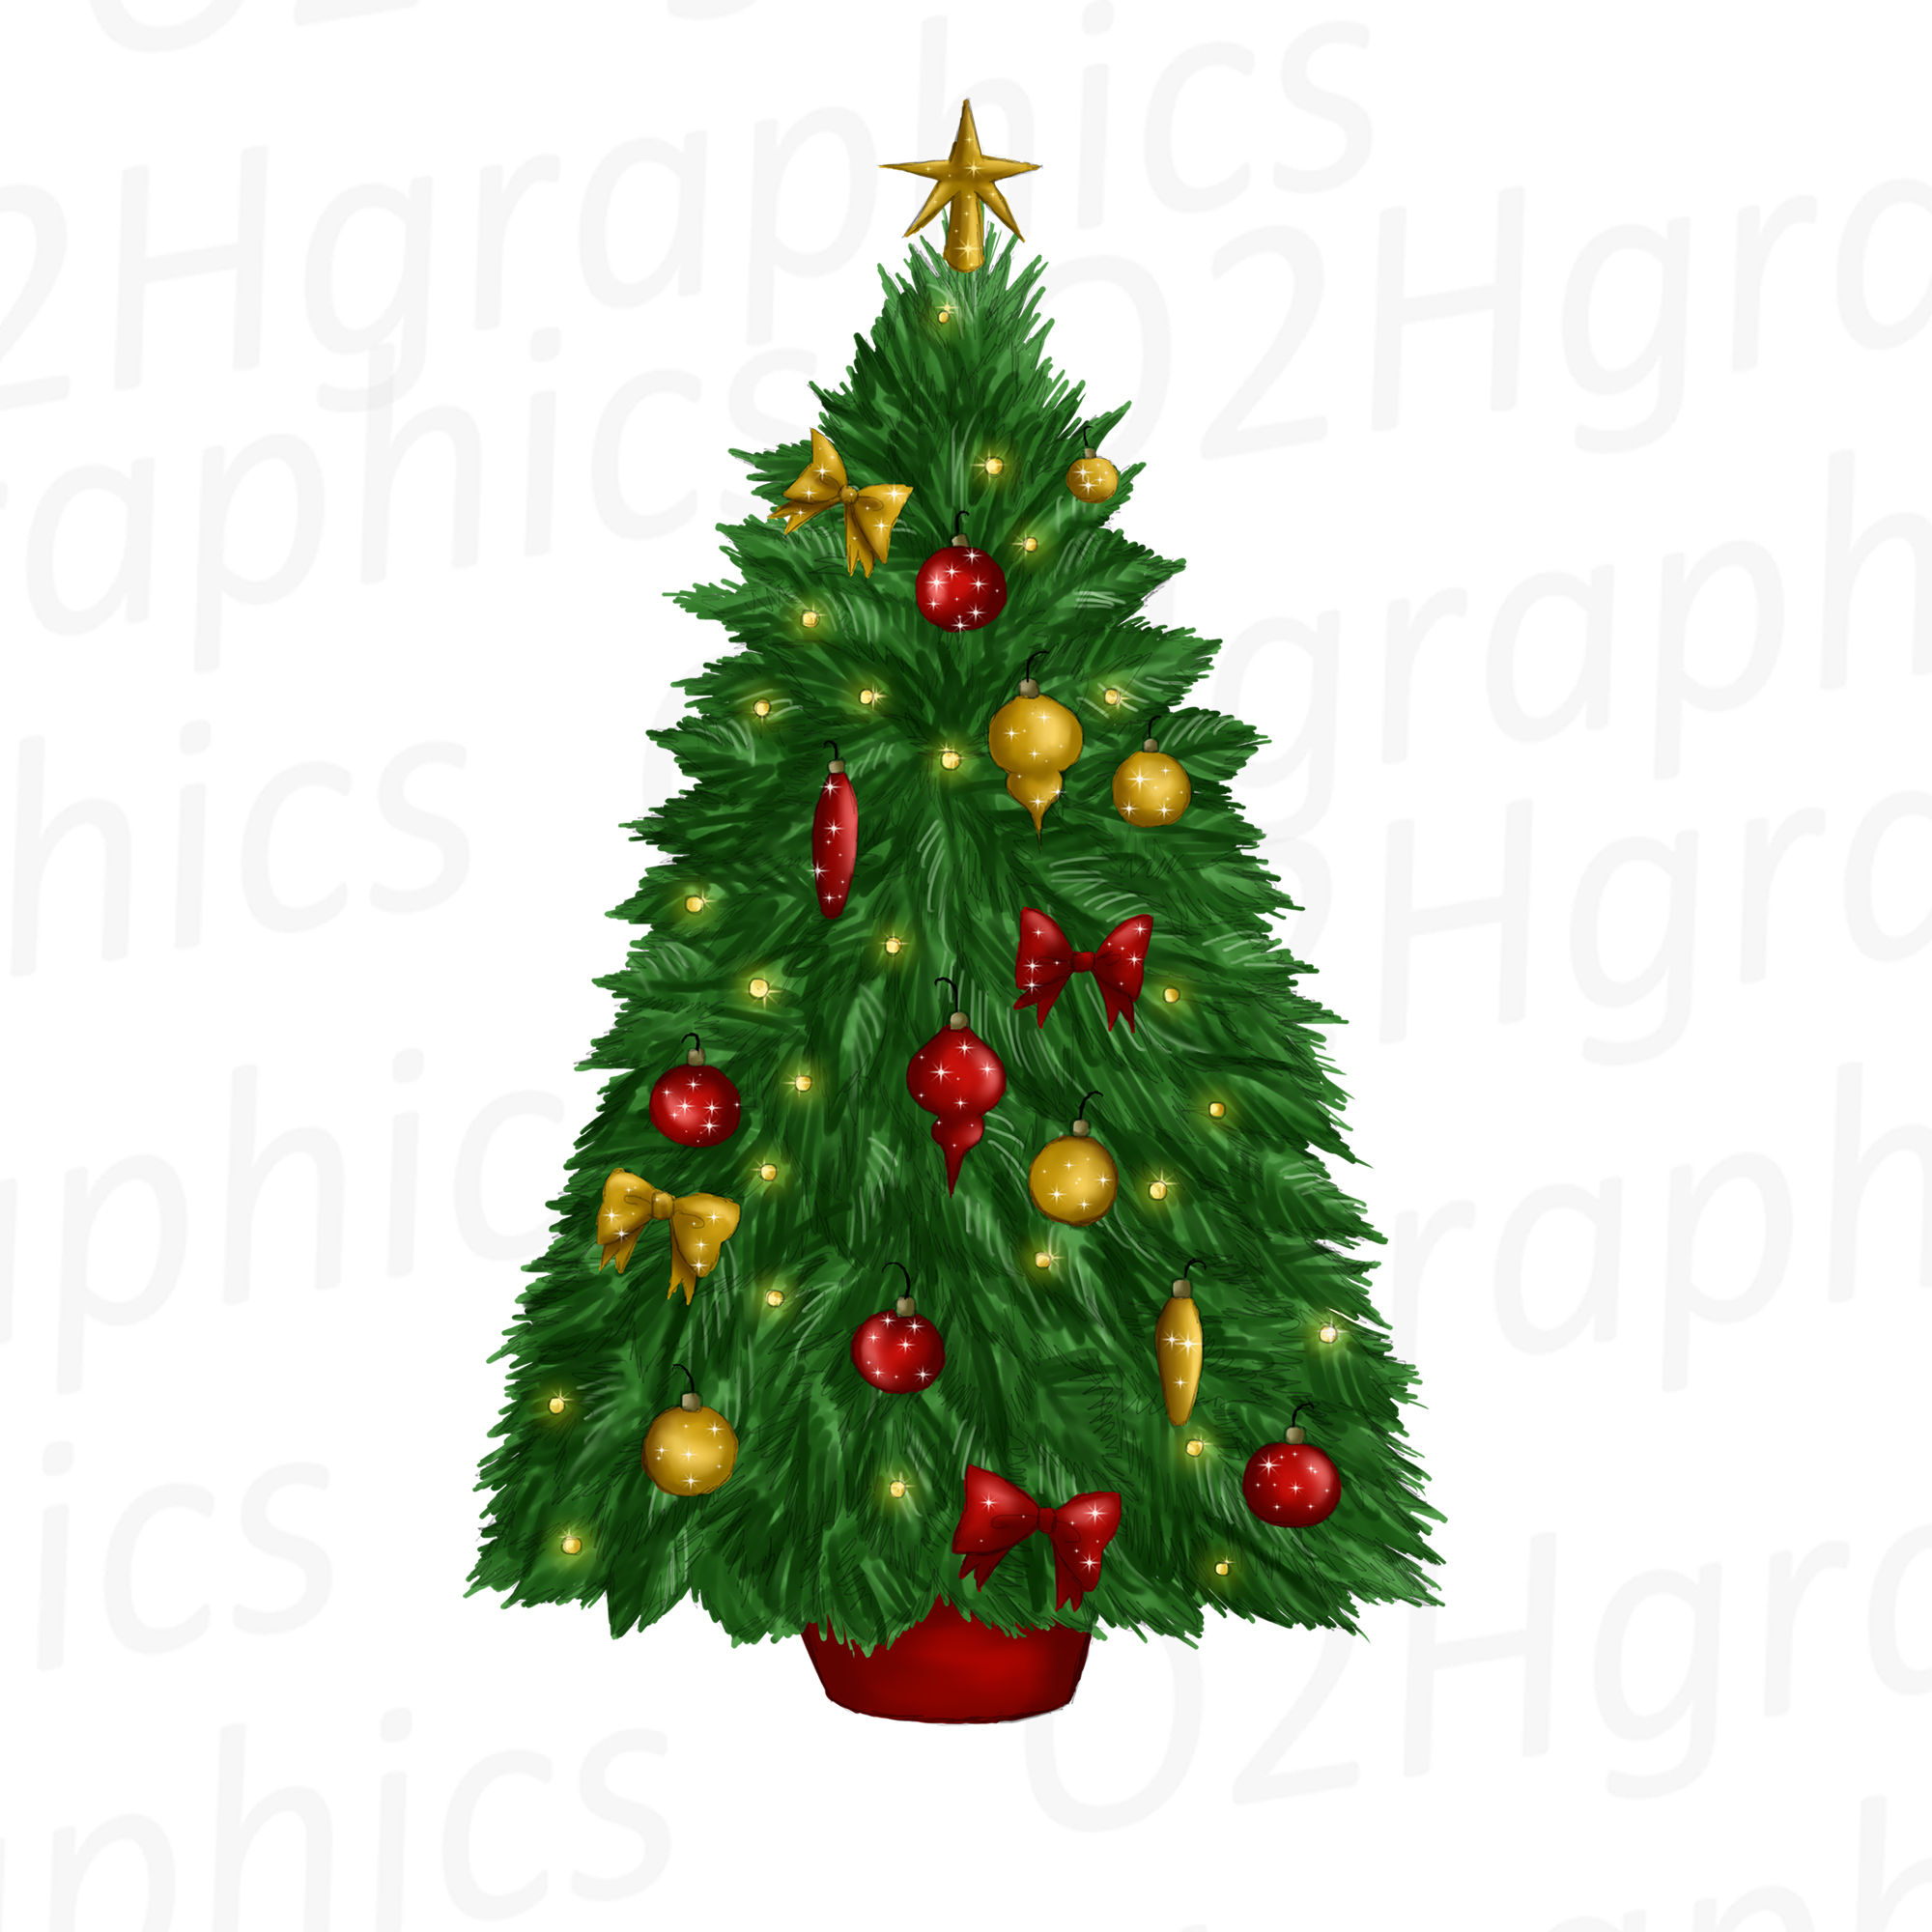 Decorated Christmas Tree Clipart, Sublimation Design, Watercolor Drawing,  Green Pine Tree Clipart, Holiday Clipart, PNG.